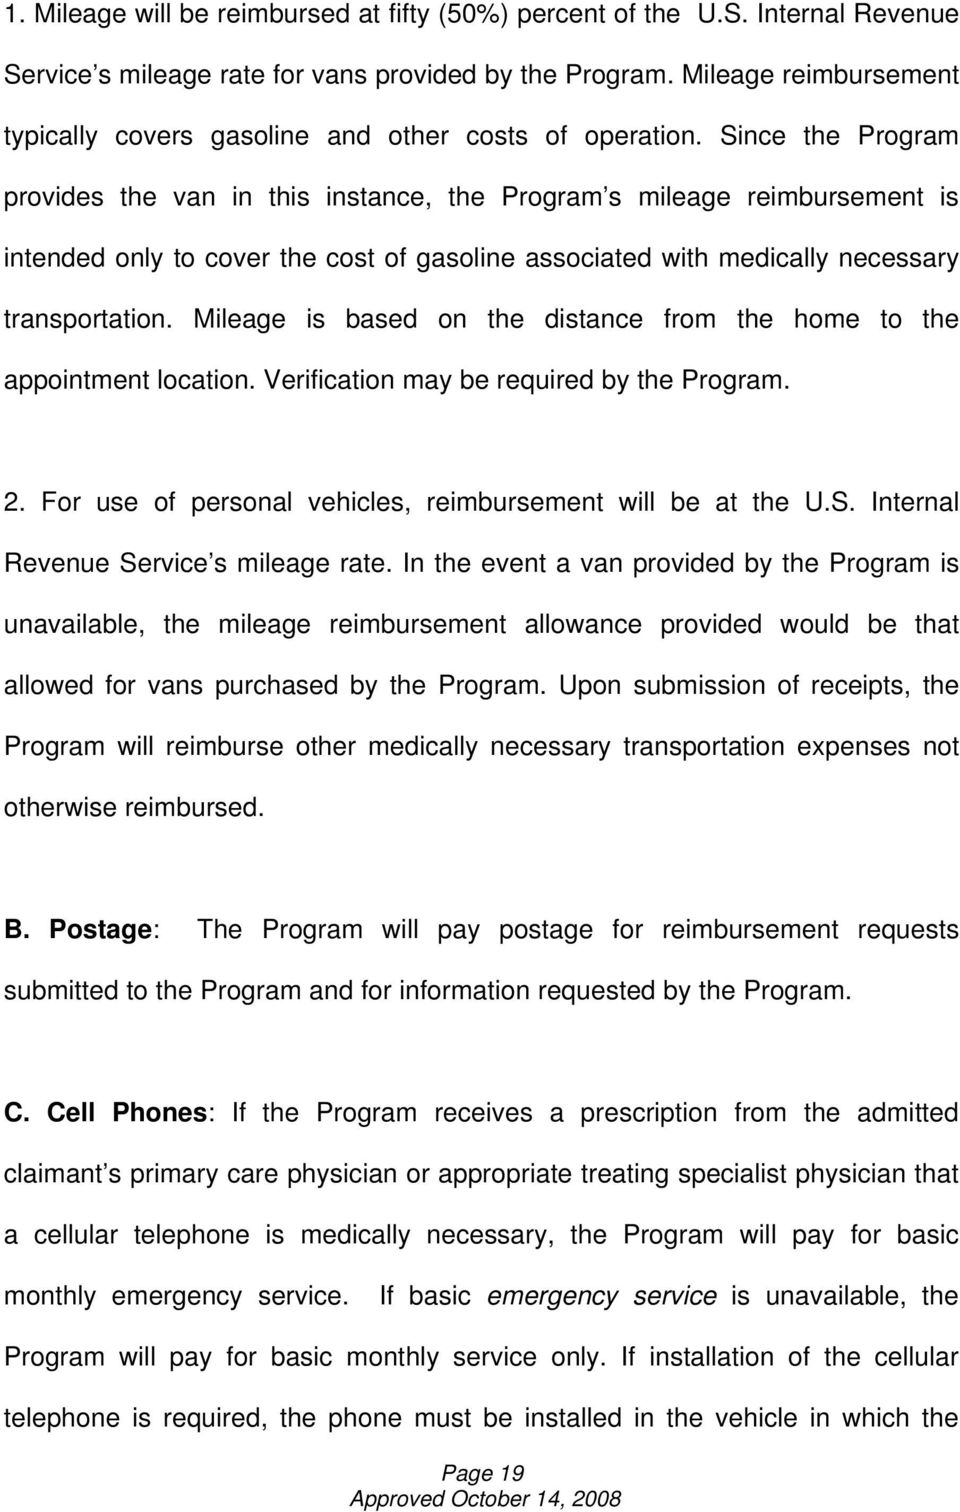 Since the Program provides the van in this instance, the Program s mileage reimbursement is intended only to cover the cost of gasoline associated with medically necessary transportation.